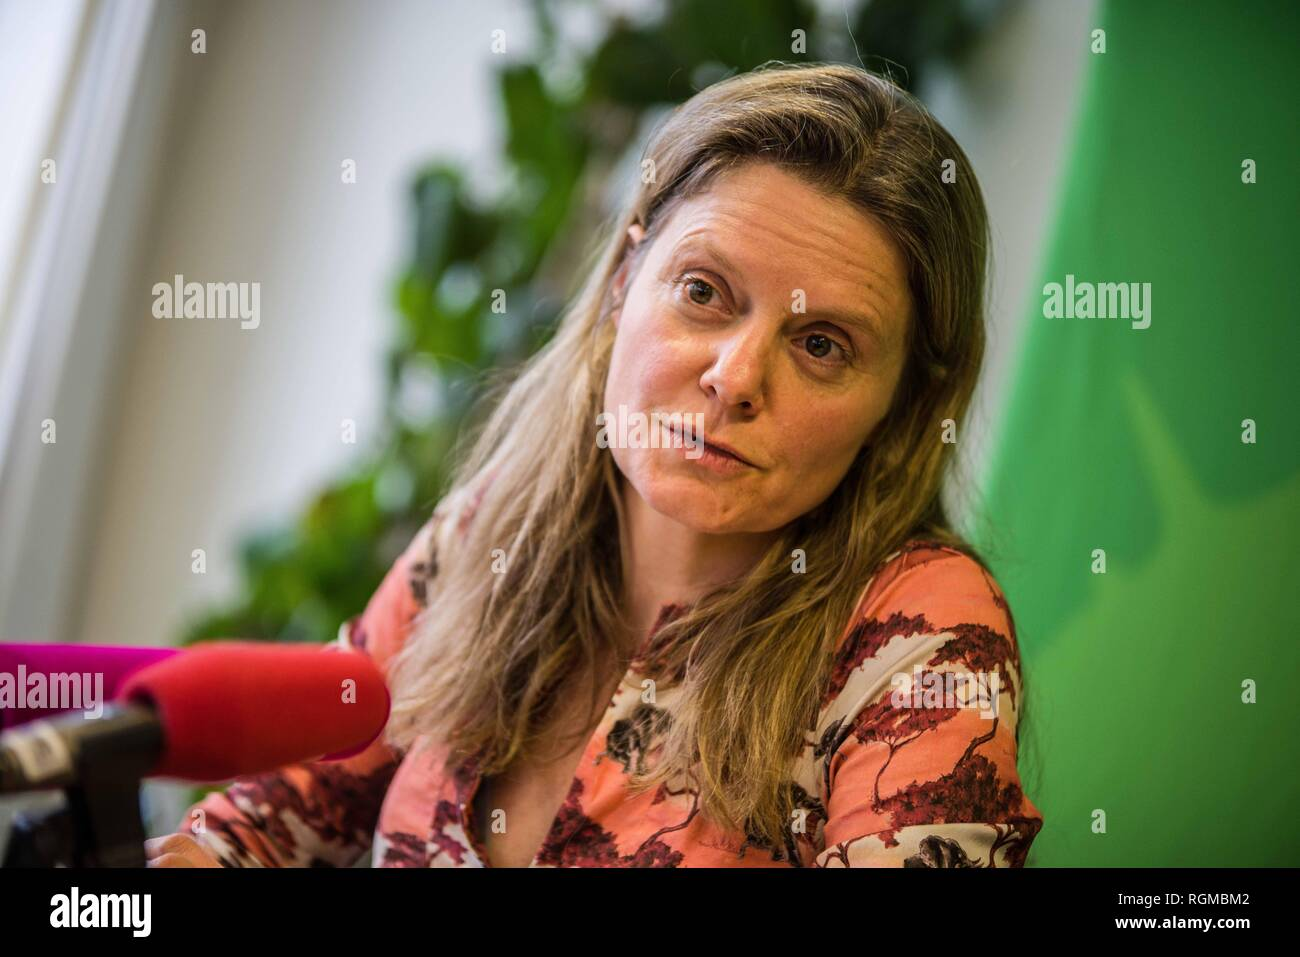 Munich, Bavaria, Germany. 30th Jan, 2019. HENRIKE HAHN, Spitzenkandidat from the Bavarian Greens for the European Parliament. The Bavarian Green Party presented Henrike Hahn, their European ParliamentSpitzenkandidat for the upcoming European elections (Europawahl). Hahn is a trained technologist and has lived previously in Detroit and Paris. Her strategies are based on ecological and social criteria and fighting against populism and right extremism. The Greens see the European Union as the greatest peace project of our time, thus they have positioned themselves against authoritarianism, - Stock Image